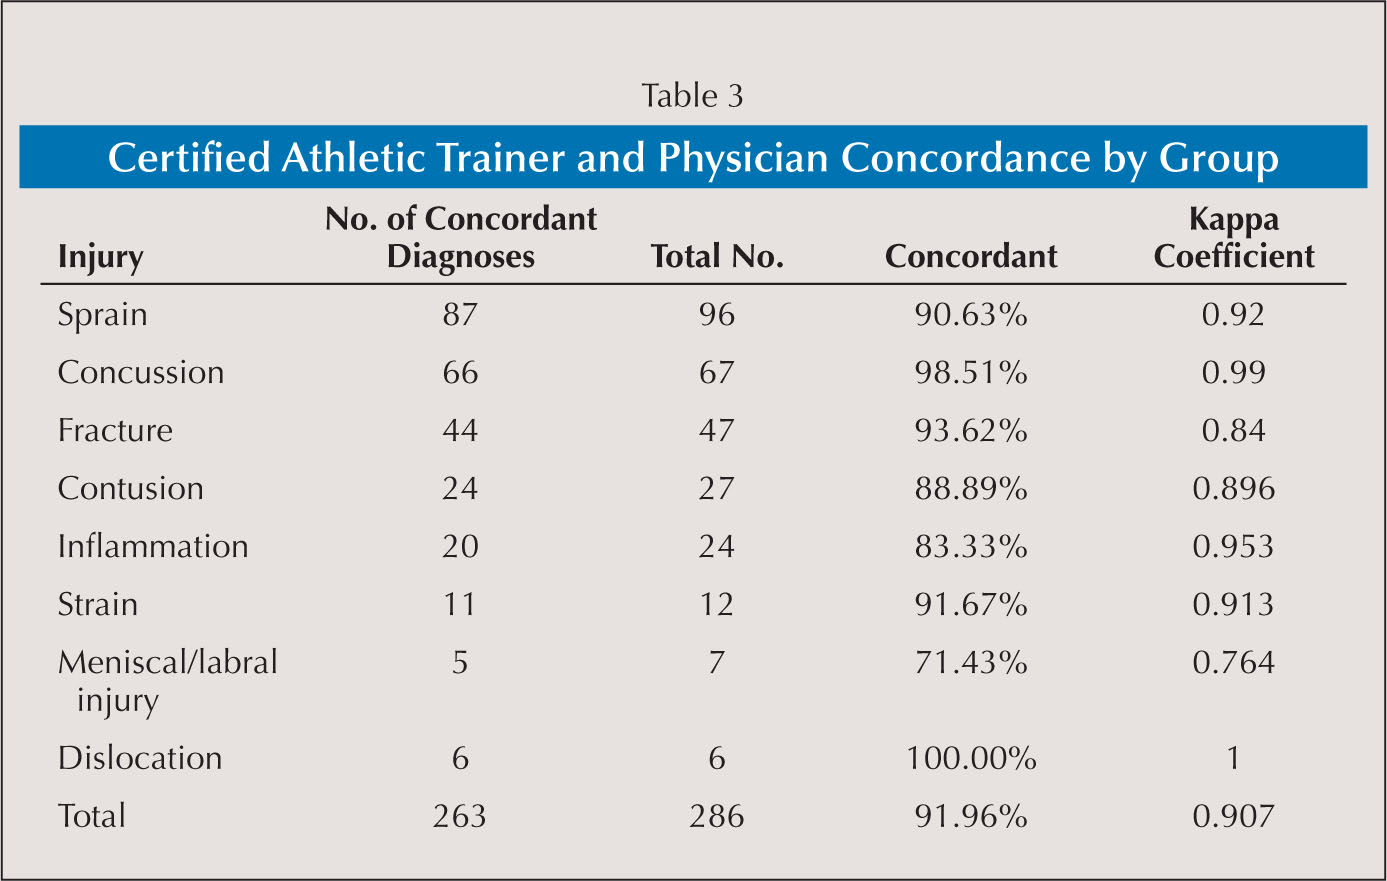 Certified Athletic Trainer and Physician Concordance by Group